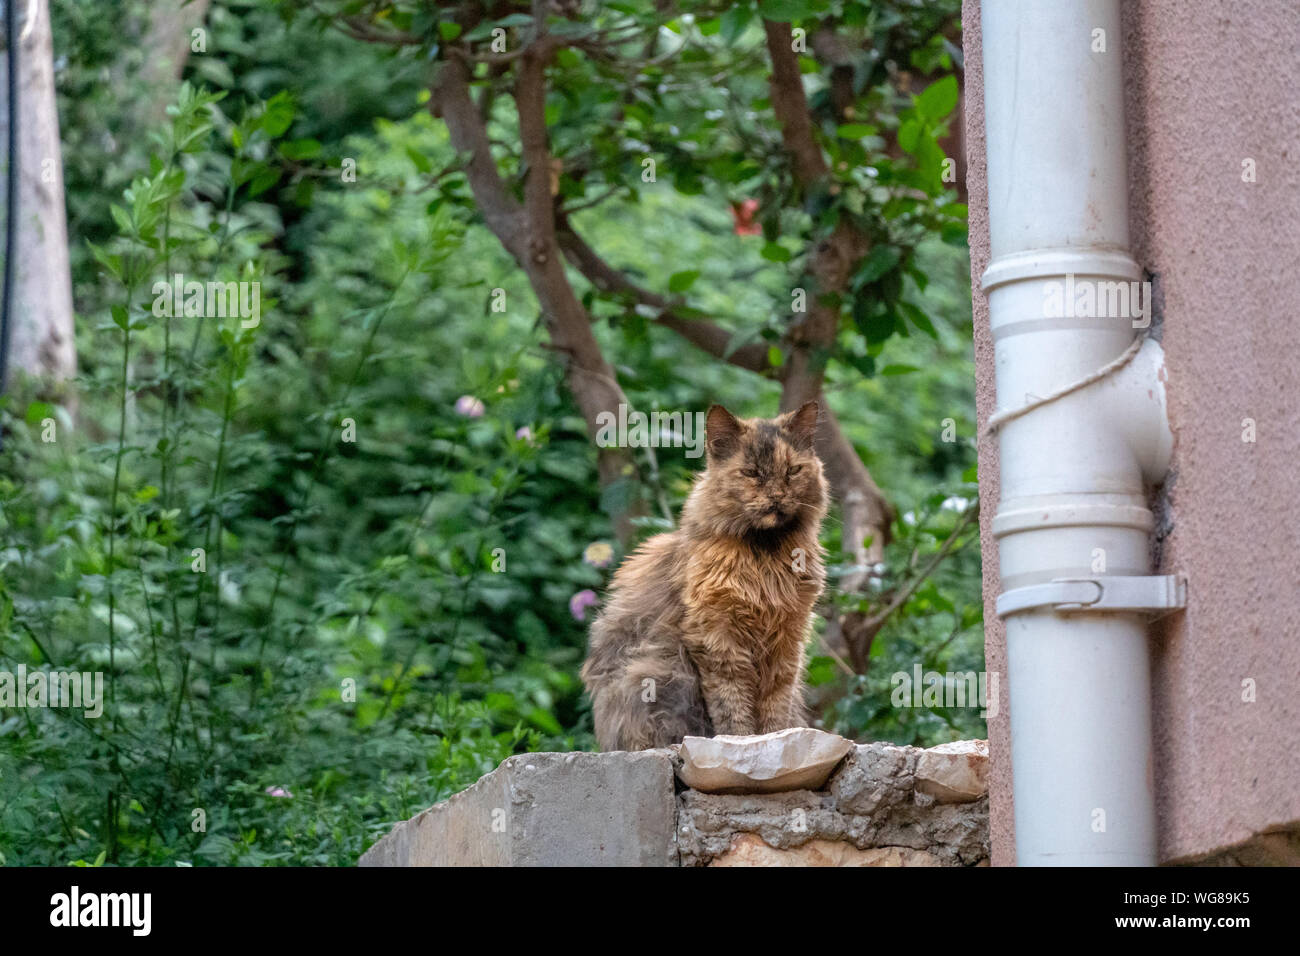 Stray cat with orange fur sits on step Stock Photo